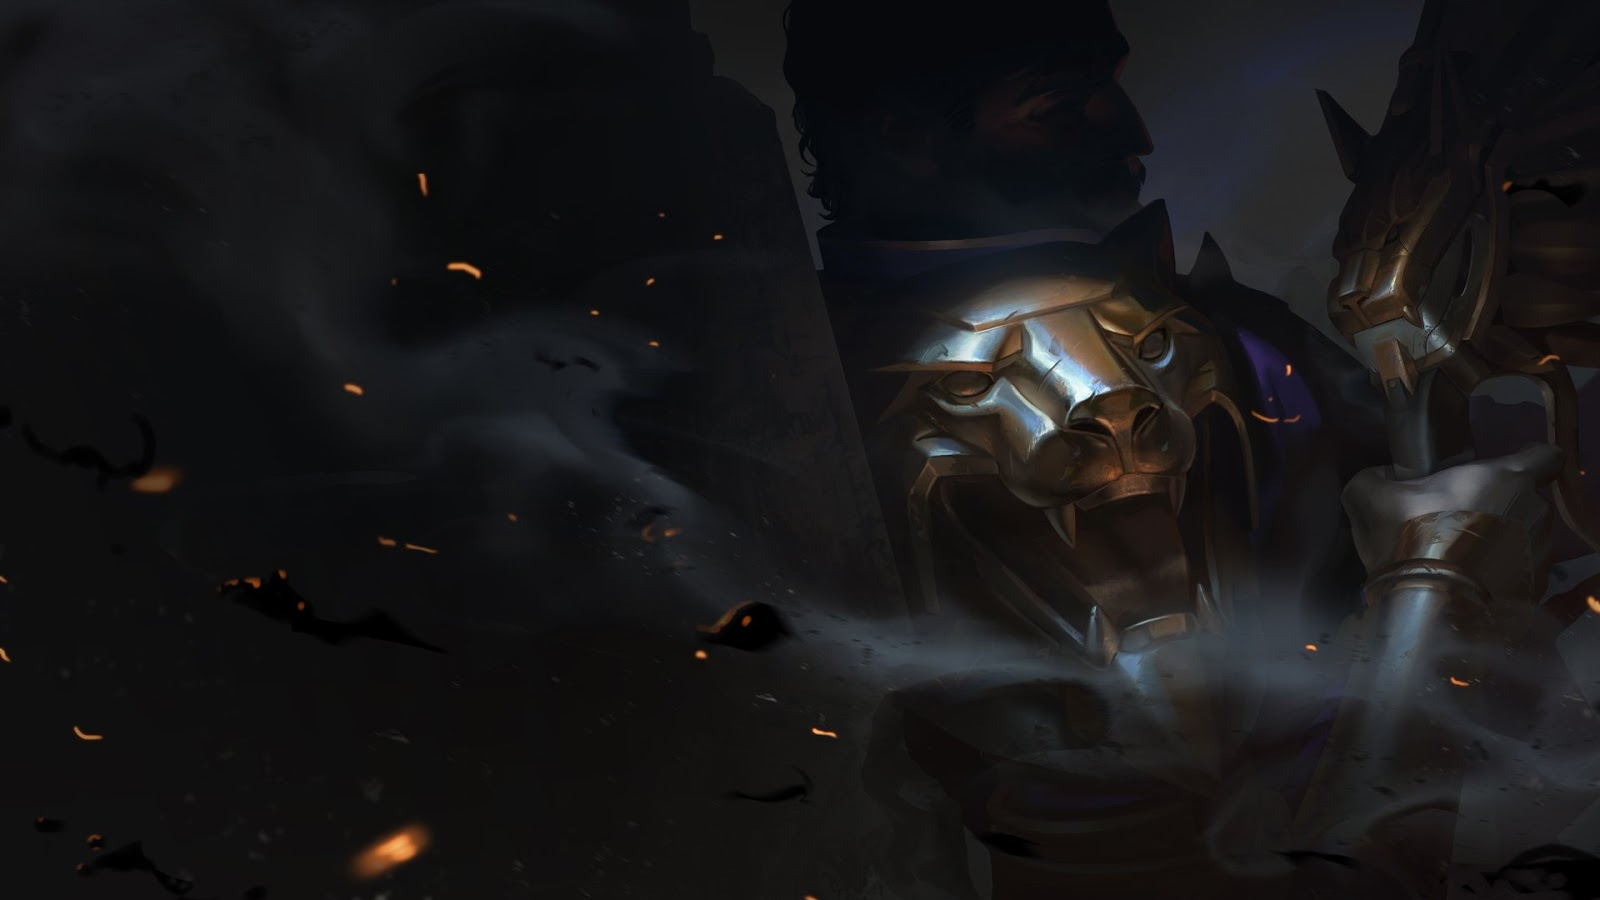 Surrender At 20 Be Victorious Skin Teaser Graves aram has a 57.52% win rate in platinum+ on patch 10.25 coming in at rank 5 of 153 and graded s tier on the lol tierlist. surrender at 20 be victorious skin teaser